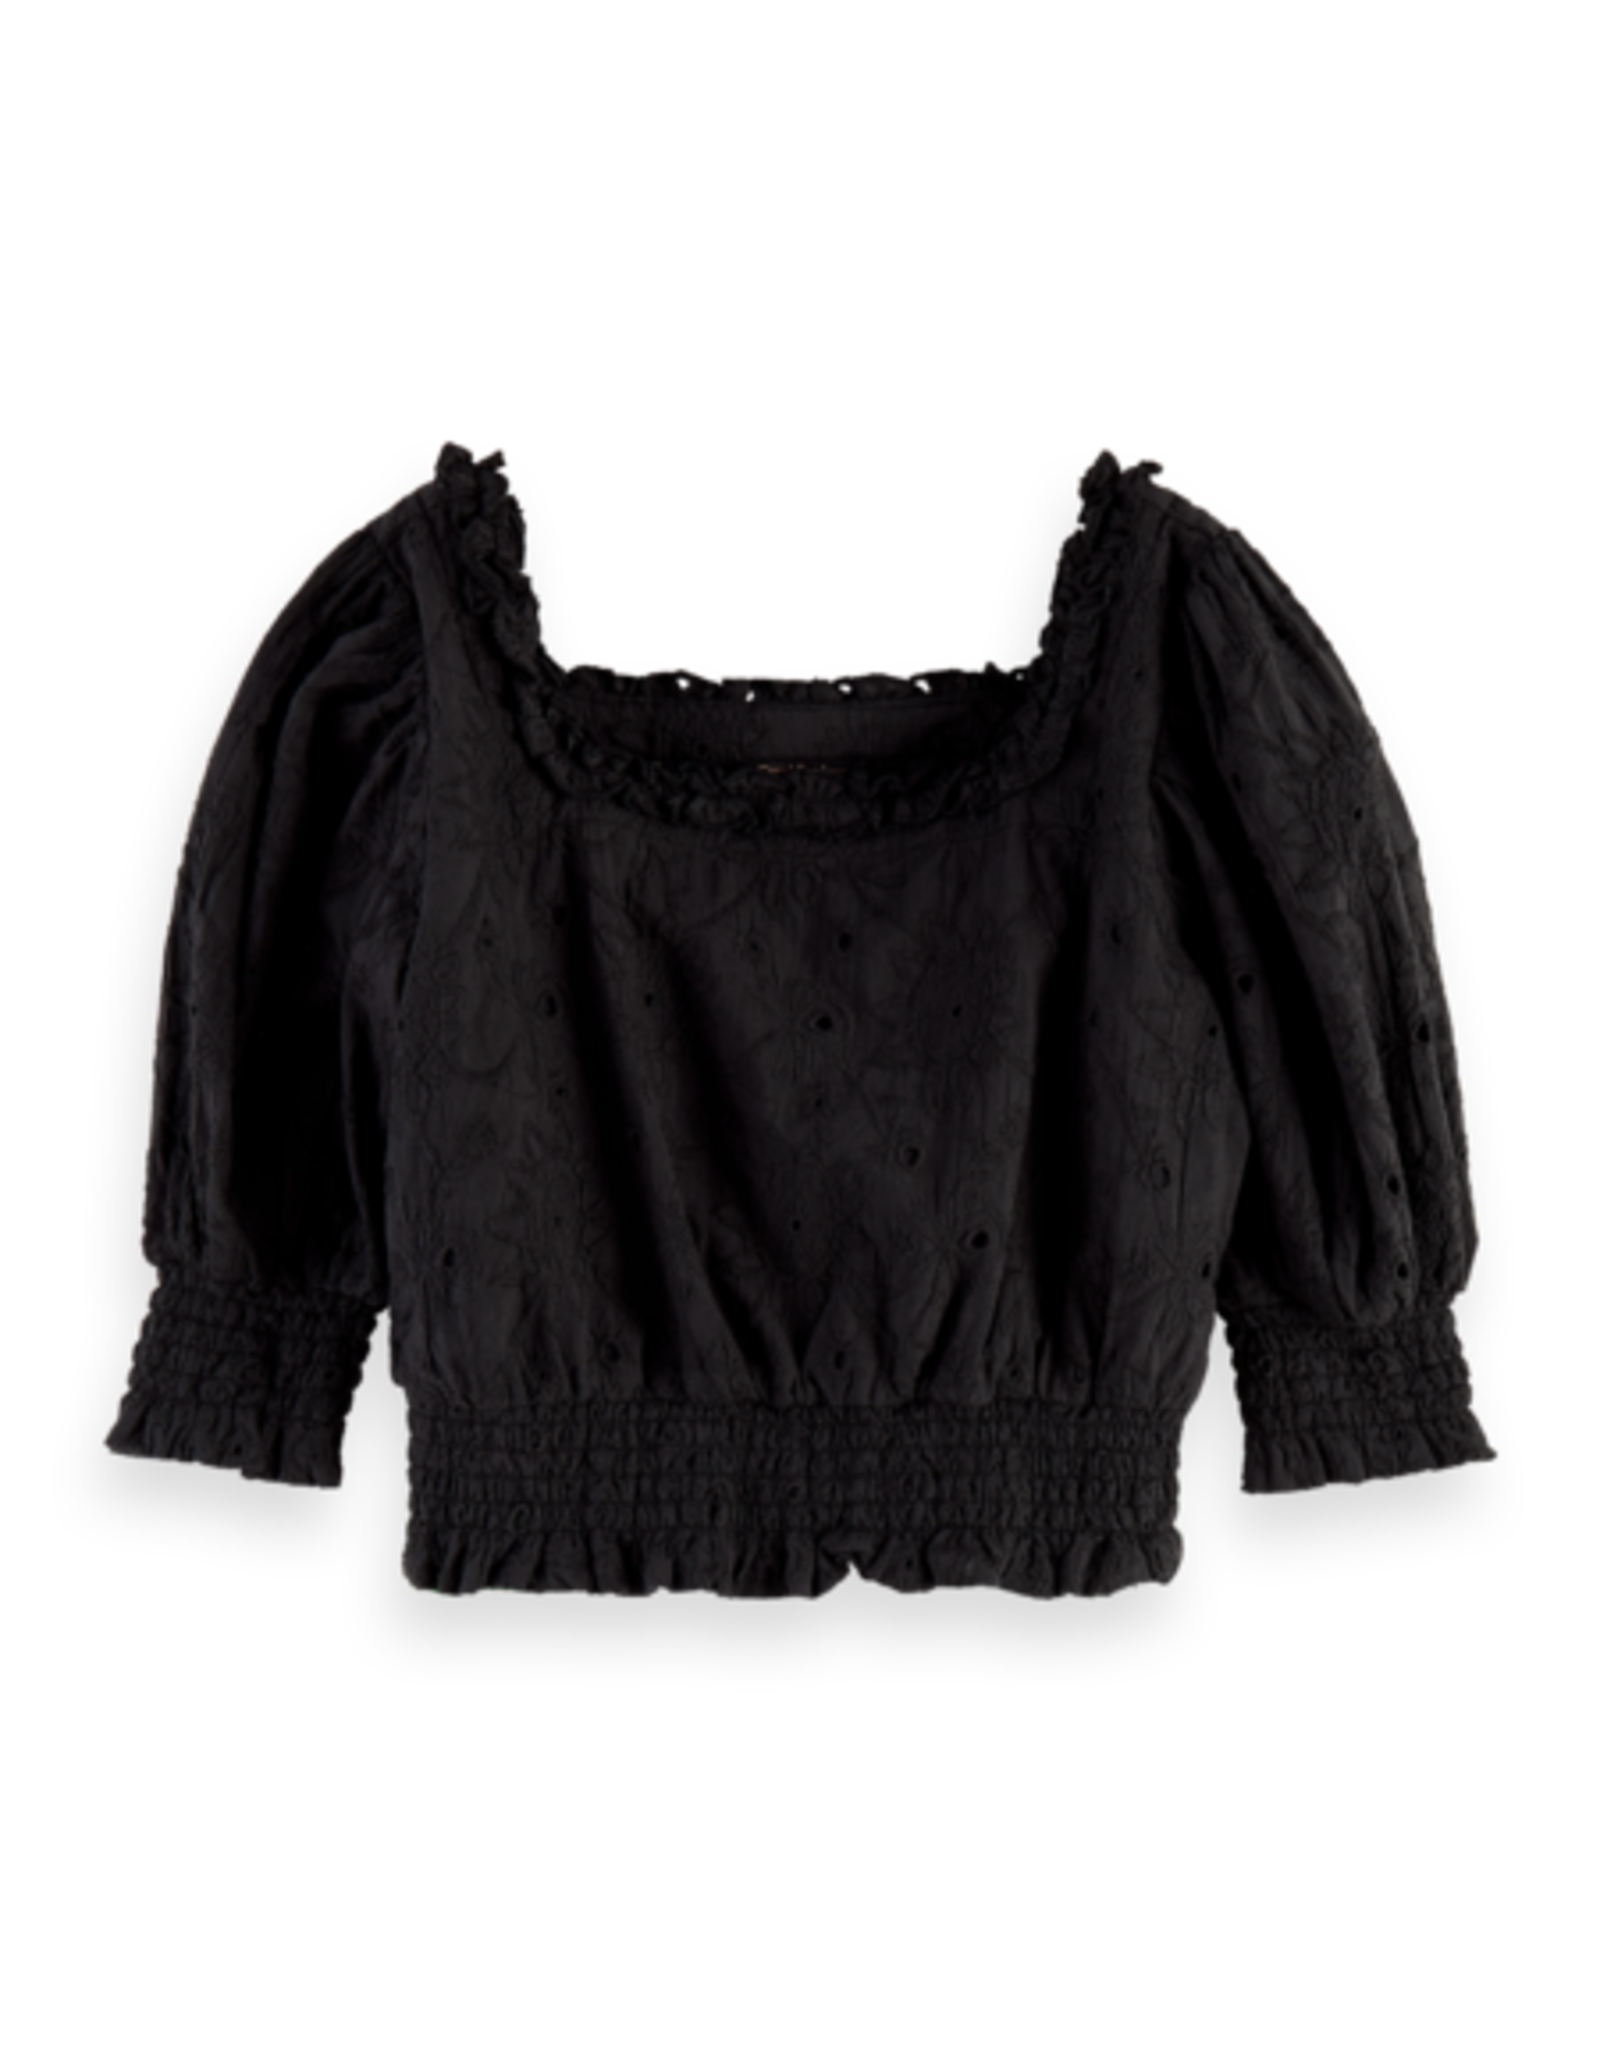 SCOTCH REBELLE Cropped top